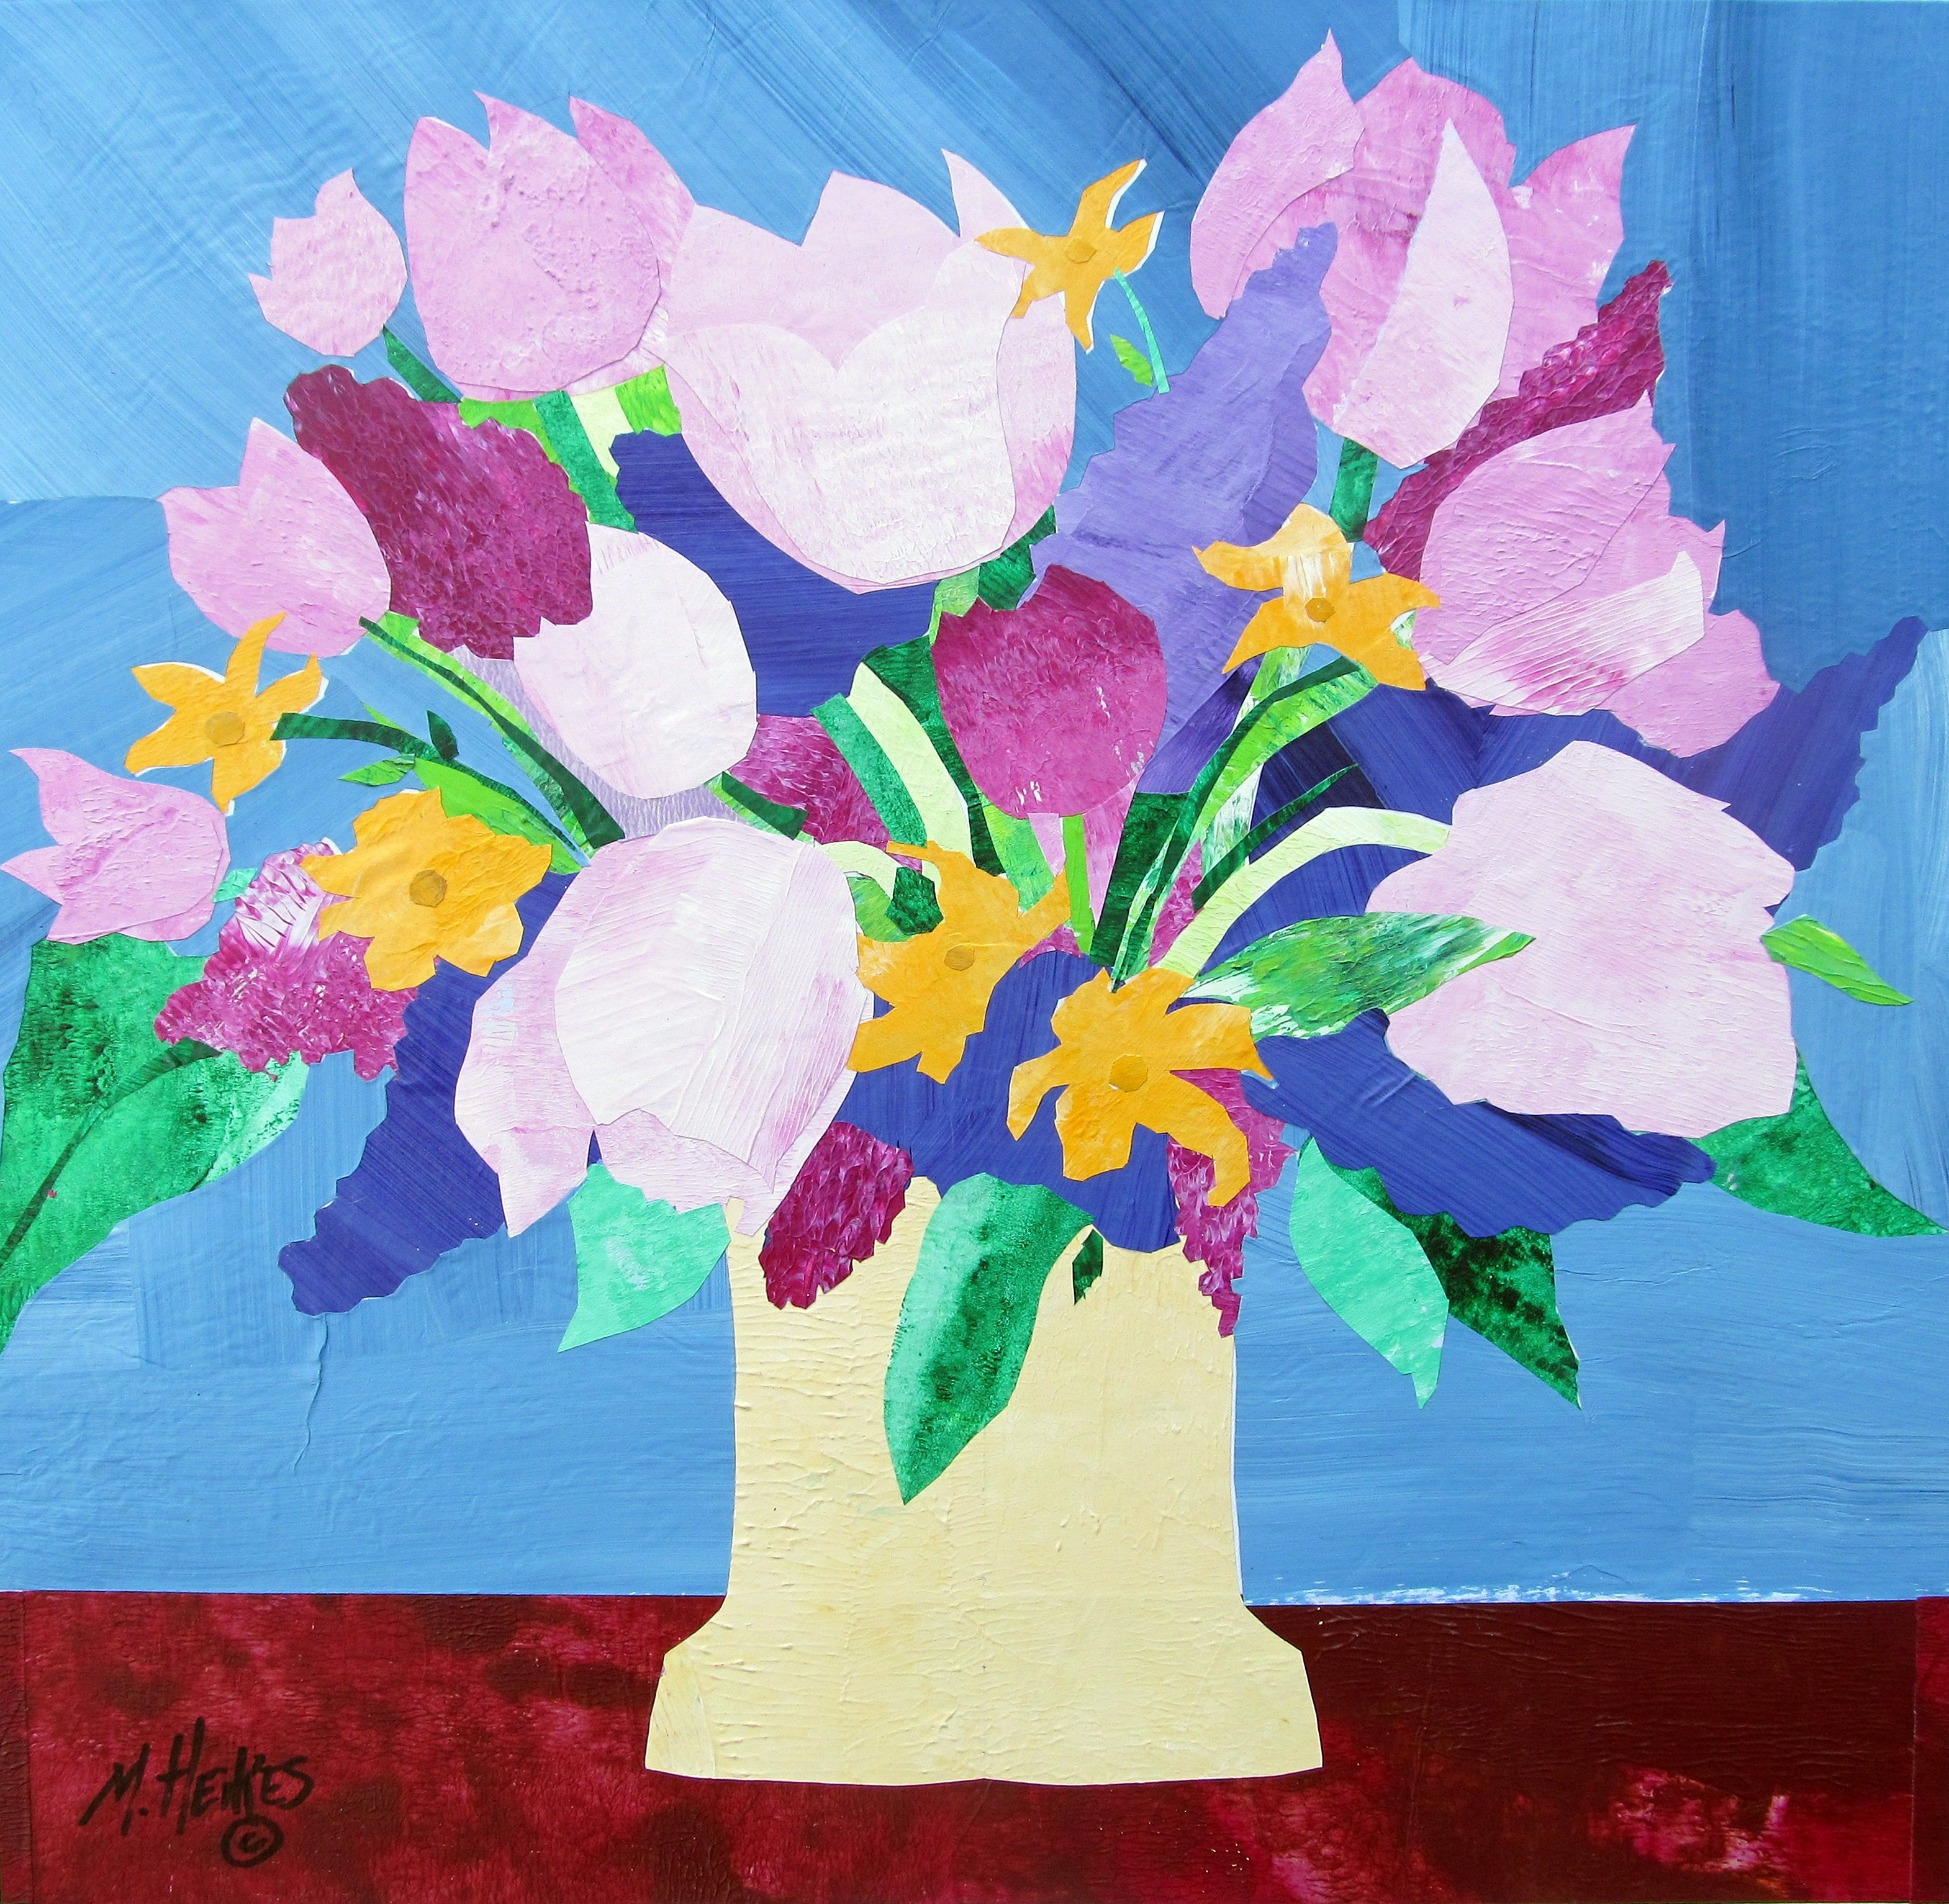 Lilacs, Lilies & Tulips